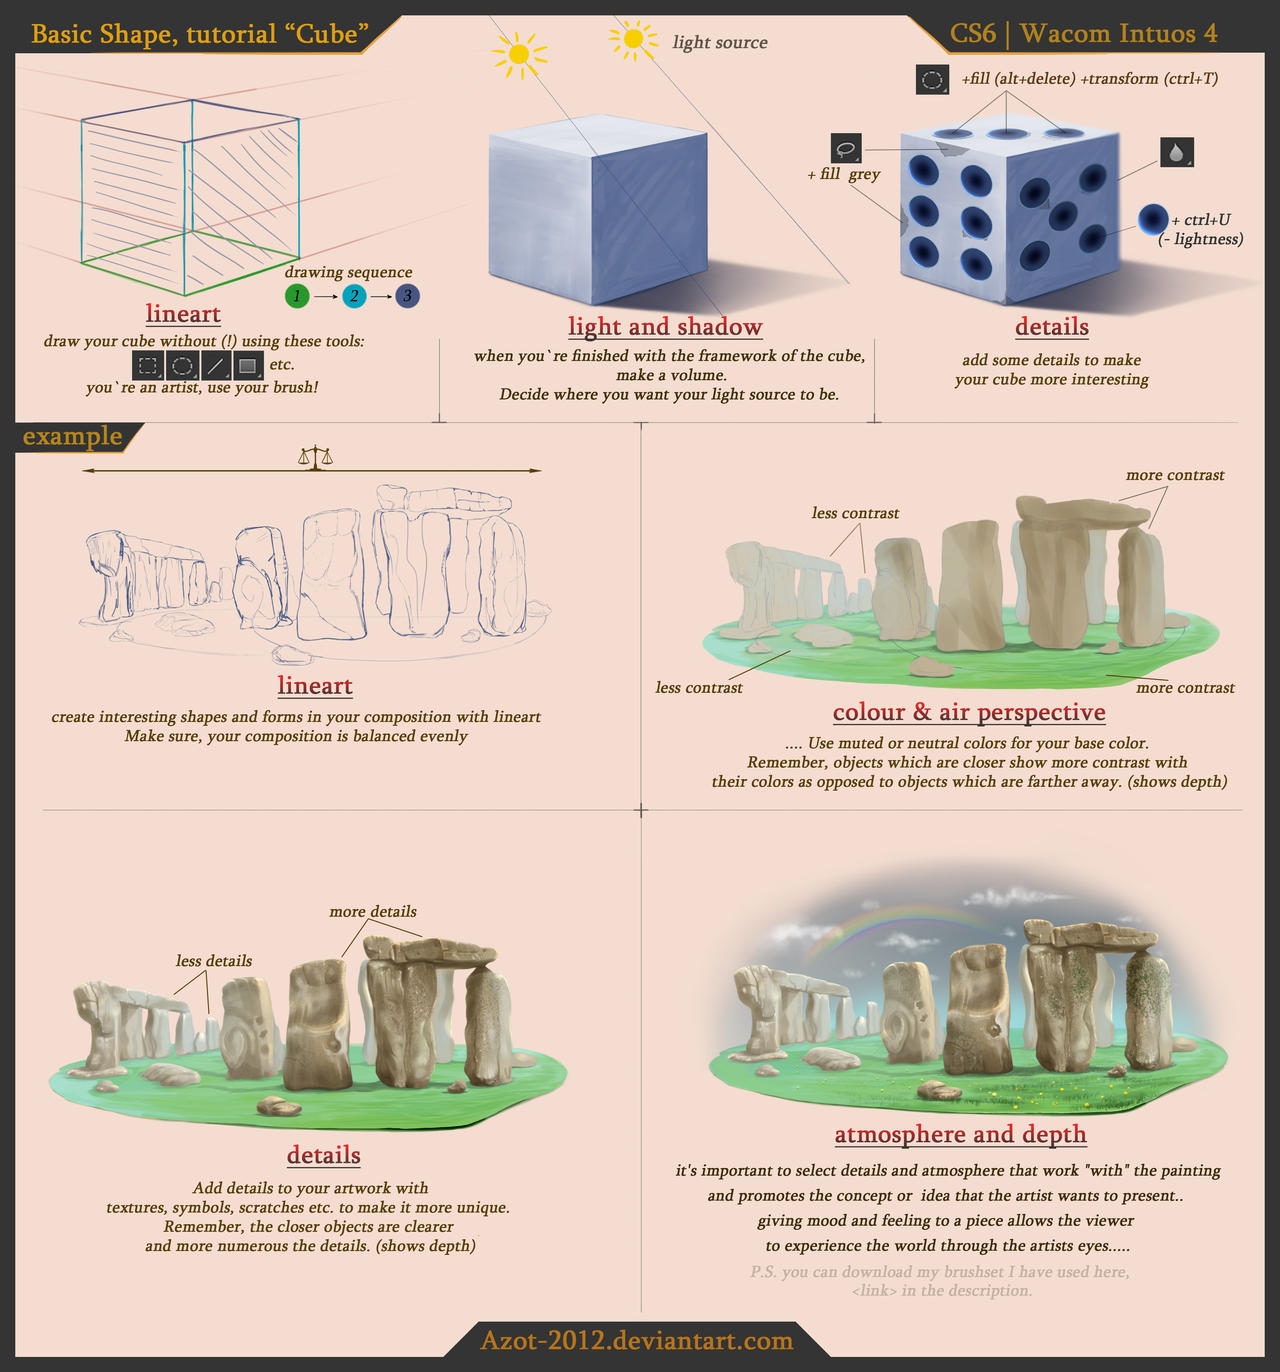 Cube tutorial by Azot2017